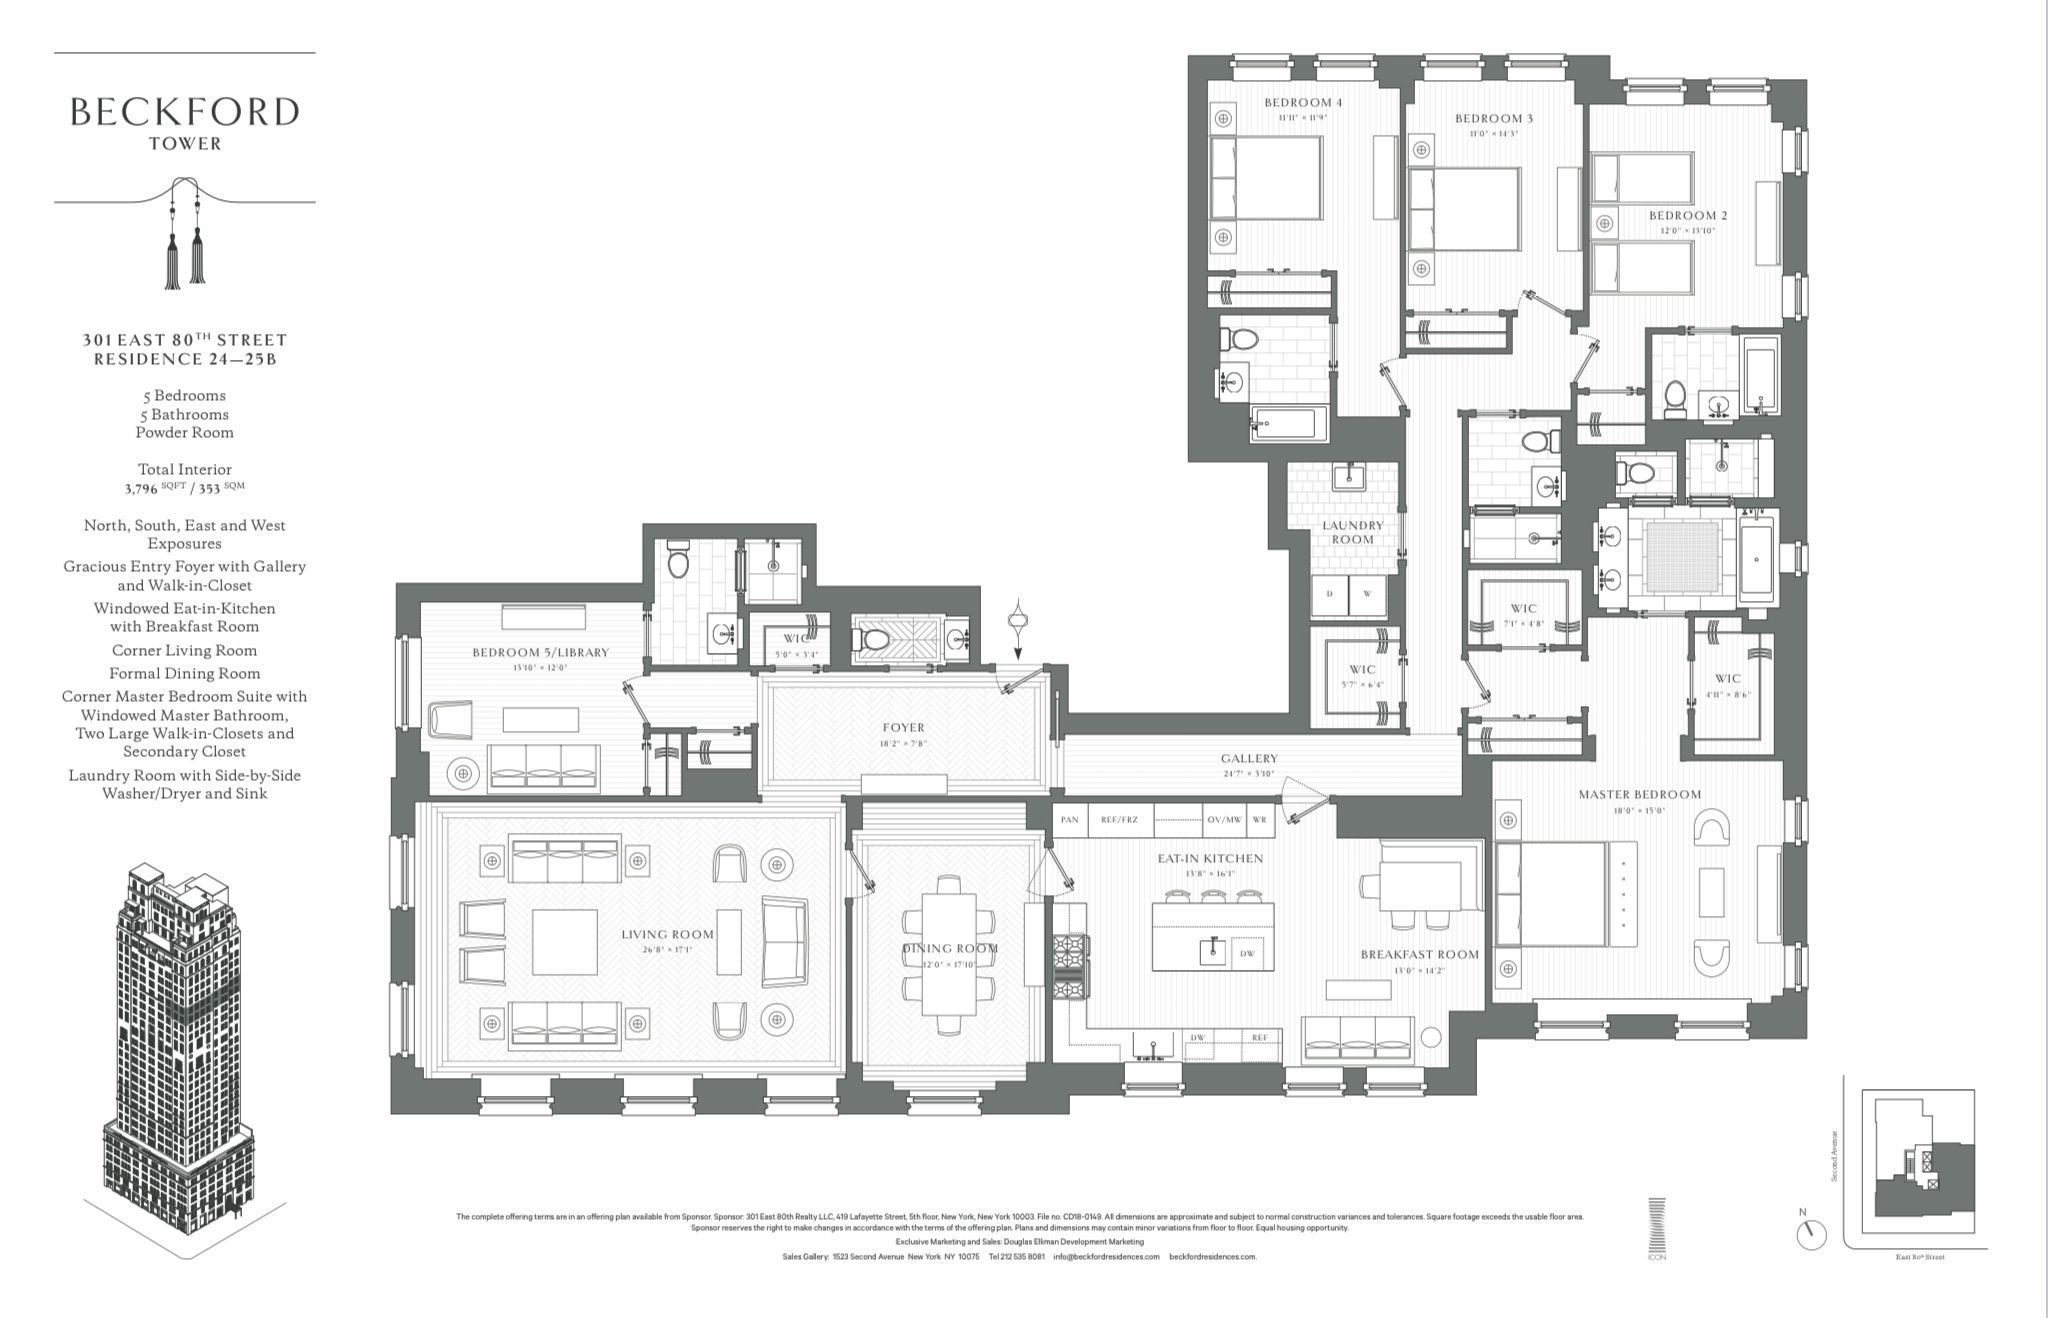 Beckford House Tower Tower Residence 24 25b In 2021 City Living Apartment Apartment Floor Plans Apartment Floor Plan